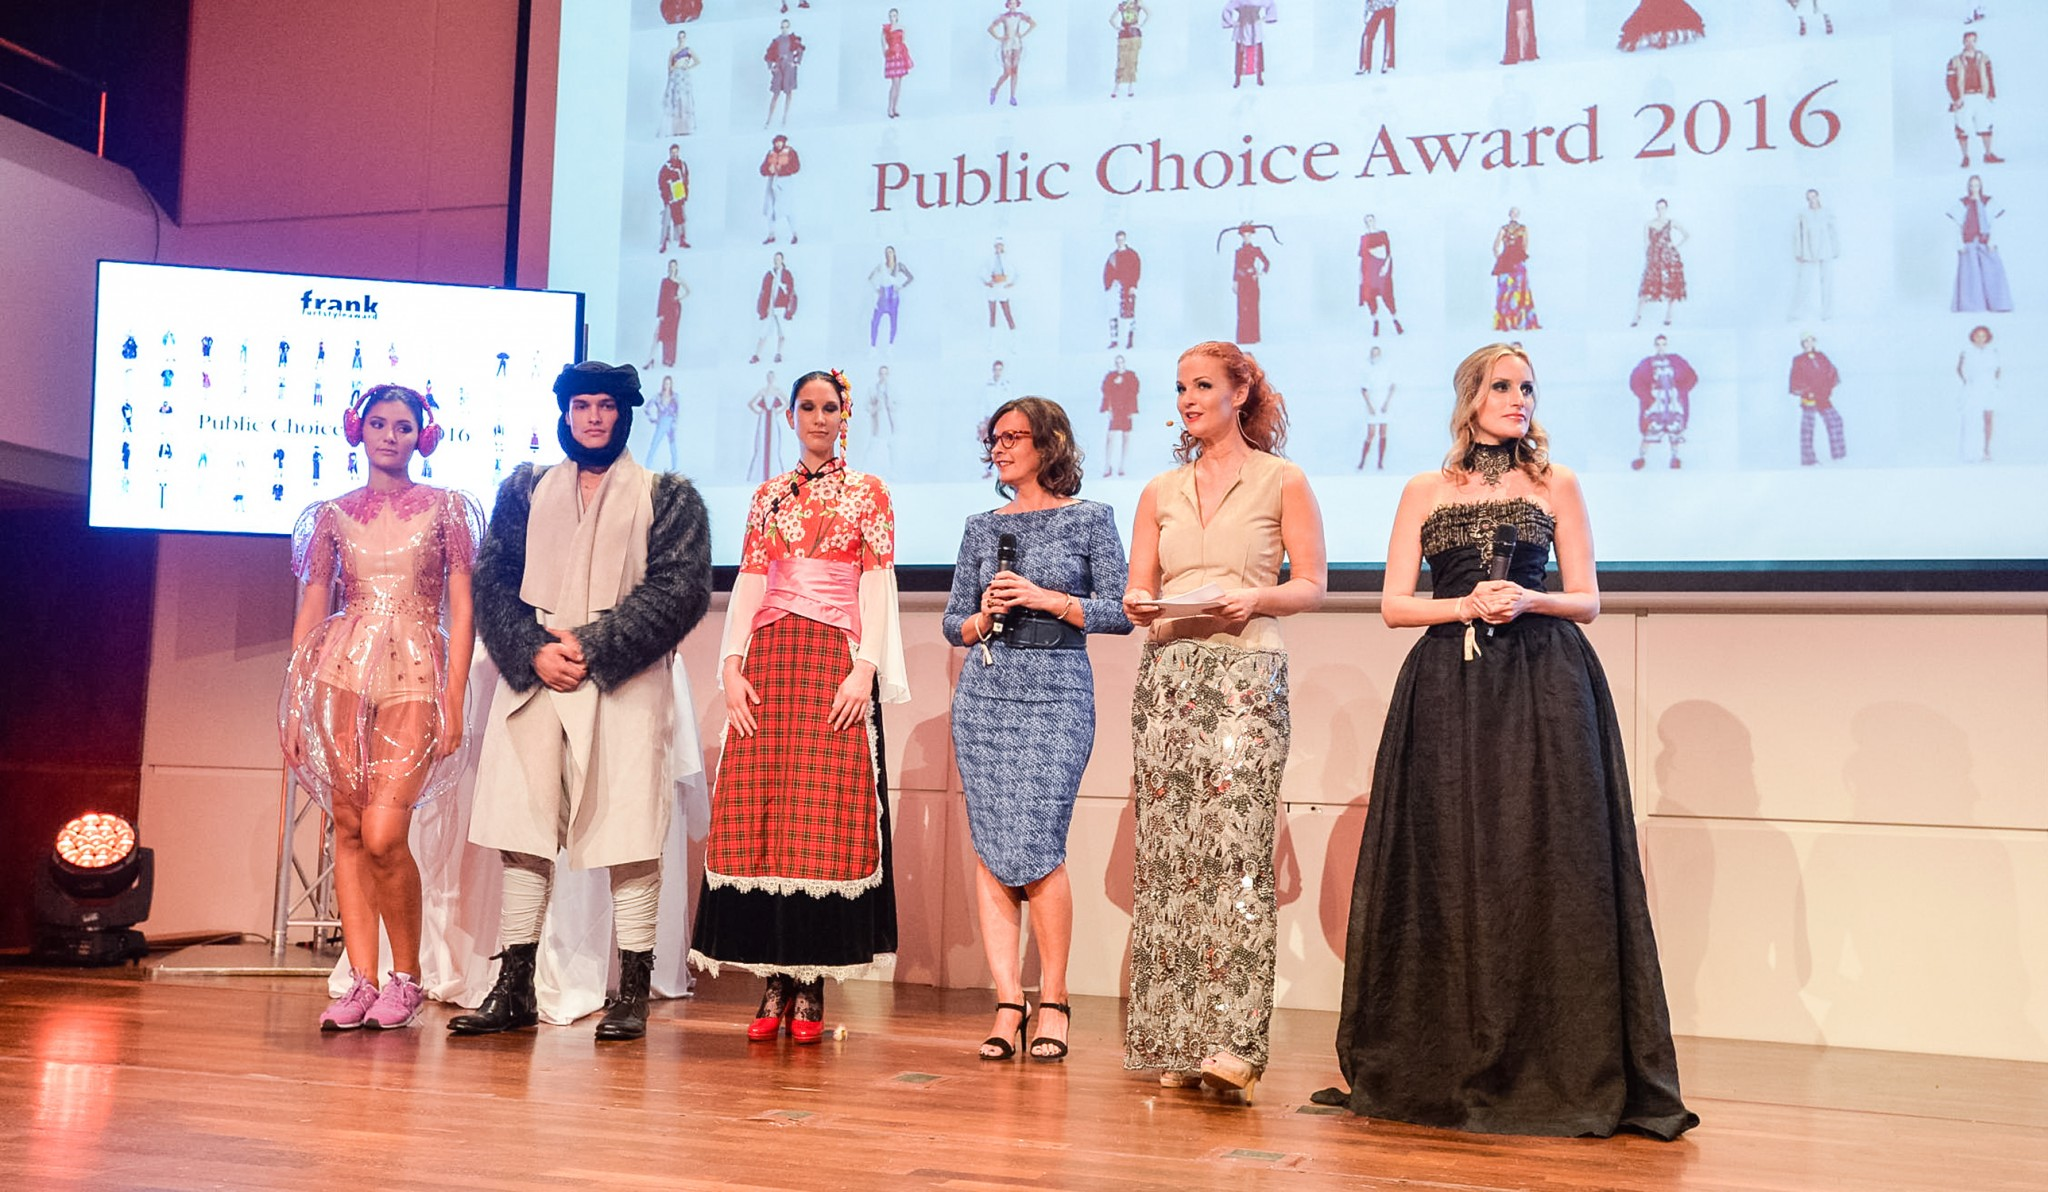 Public Choice Award 2016